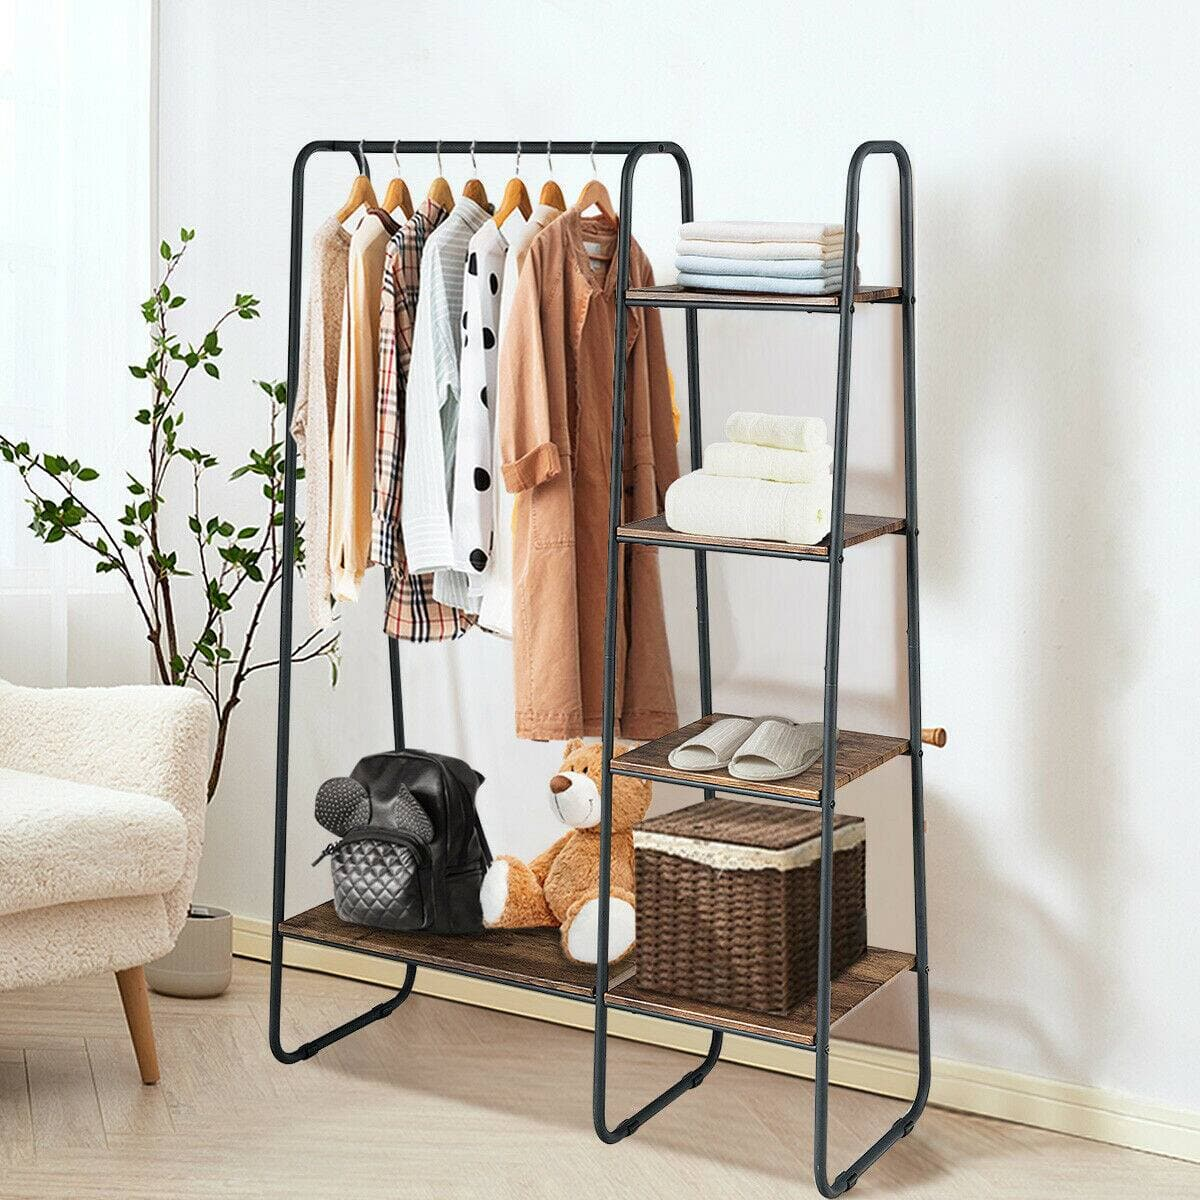 Costway Clothes Rack Free Standing Storage Tower with Metal Frame $73.95 + Free Shipping